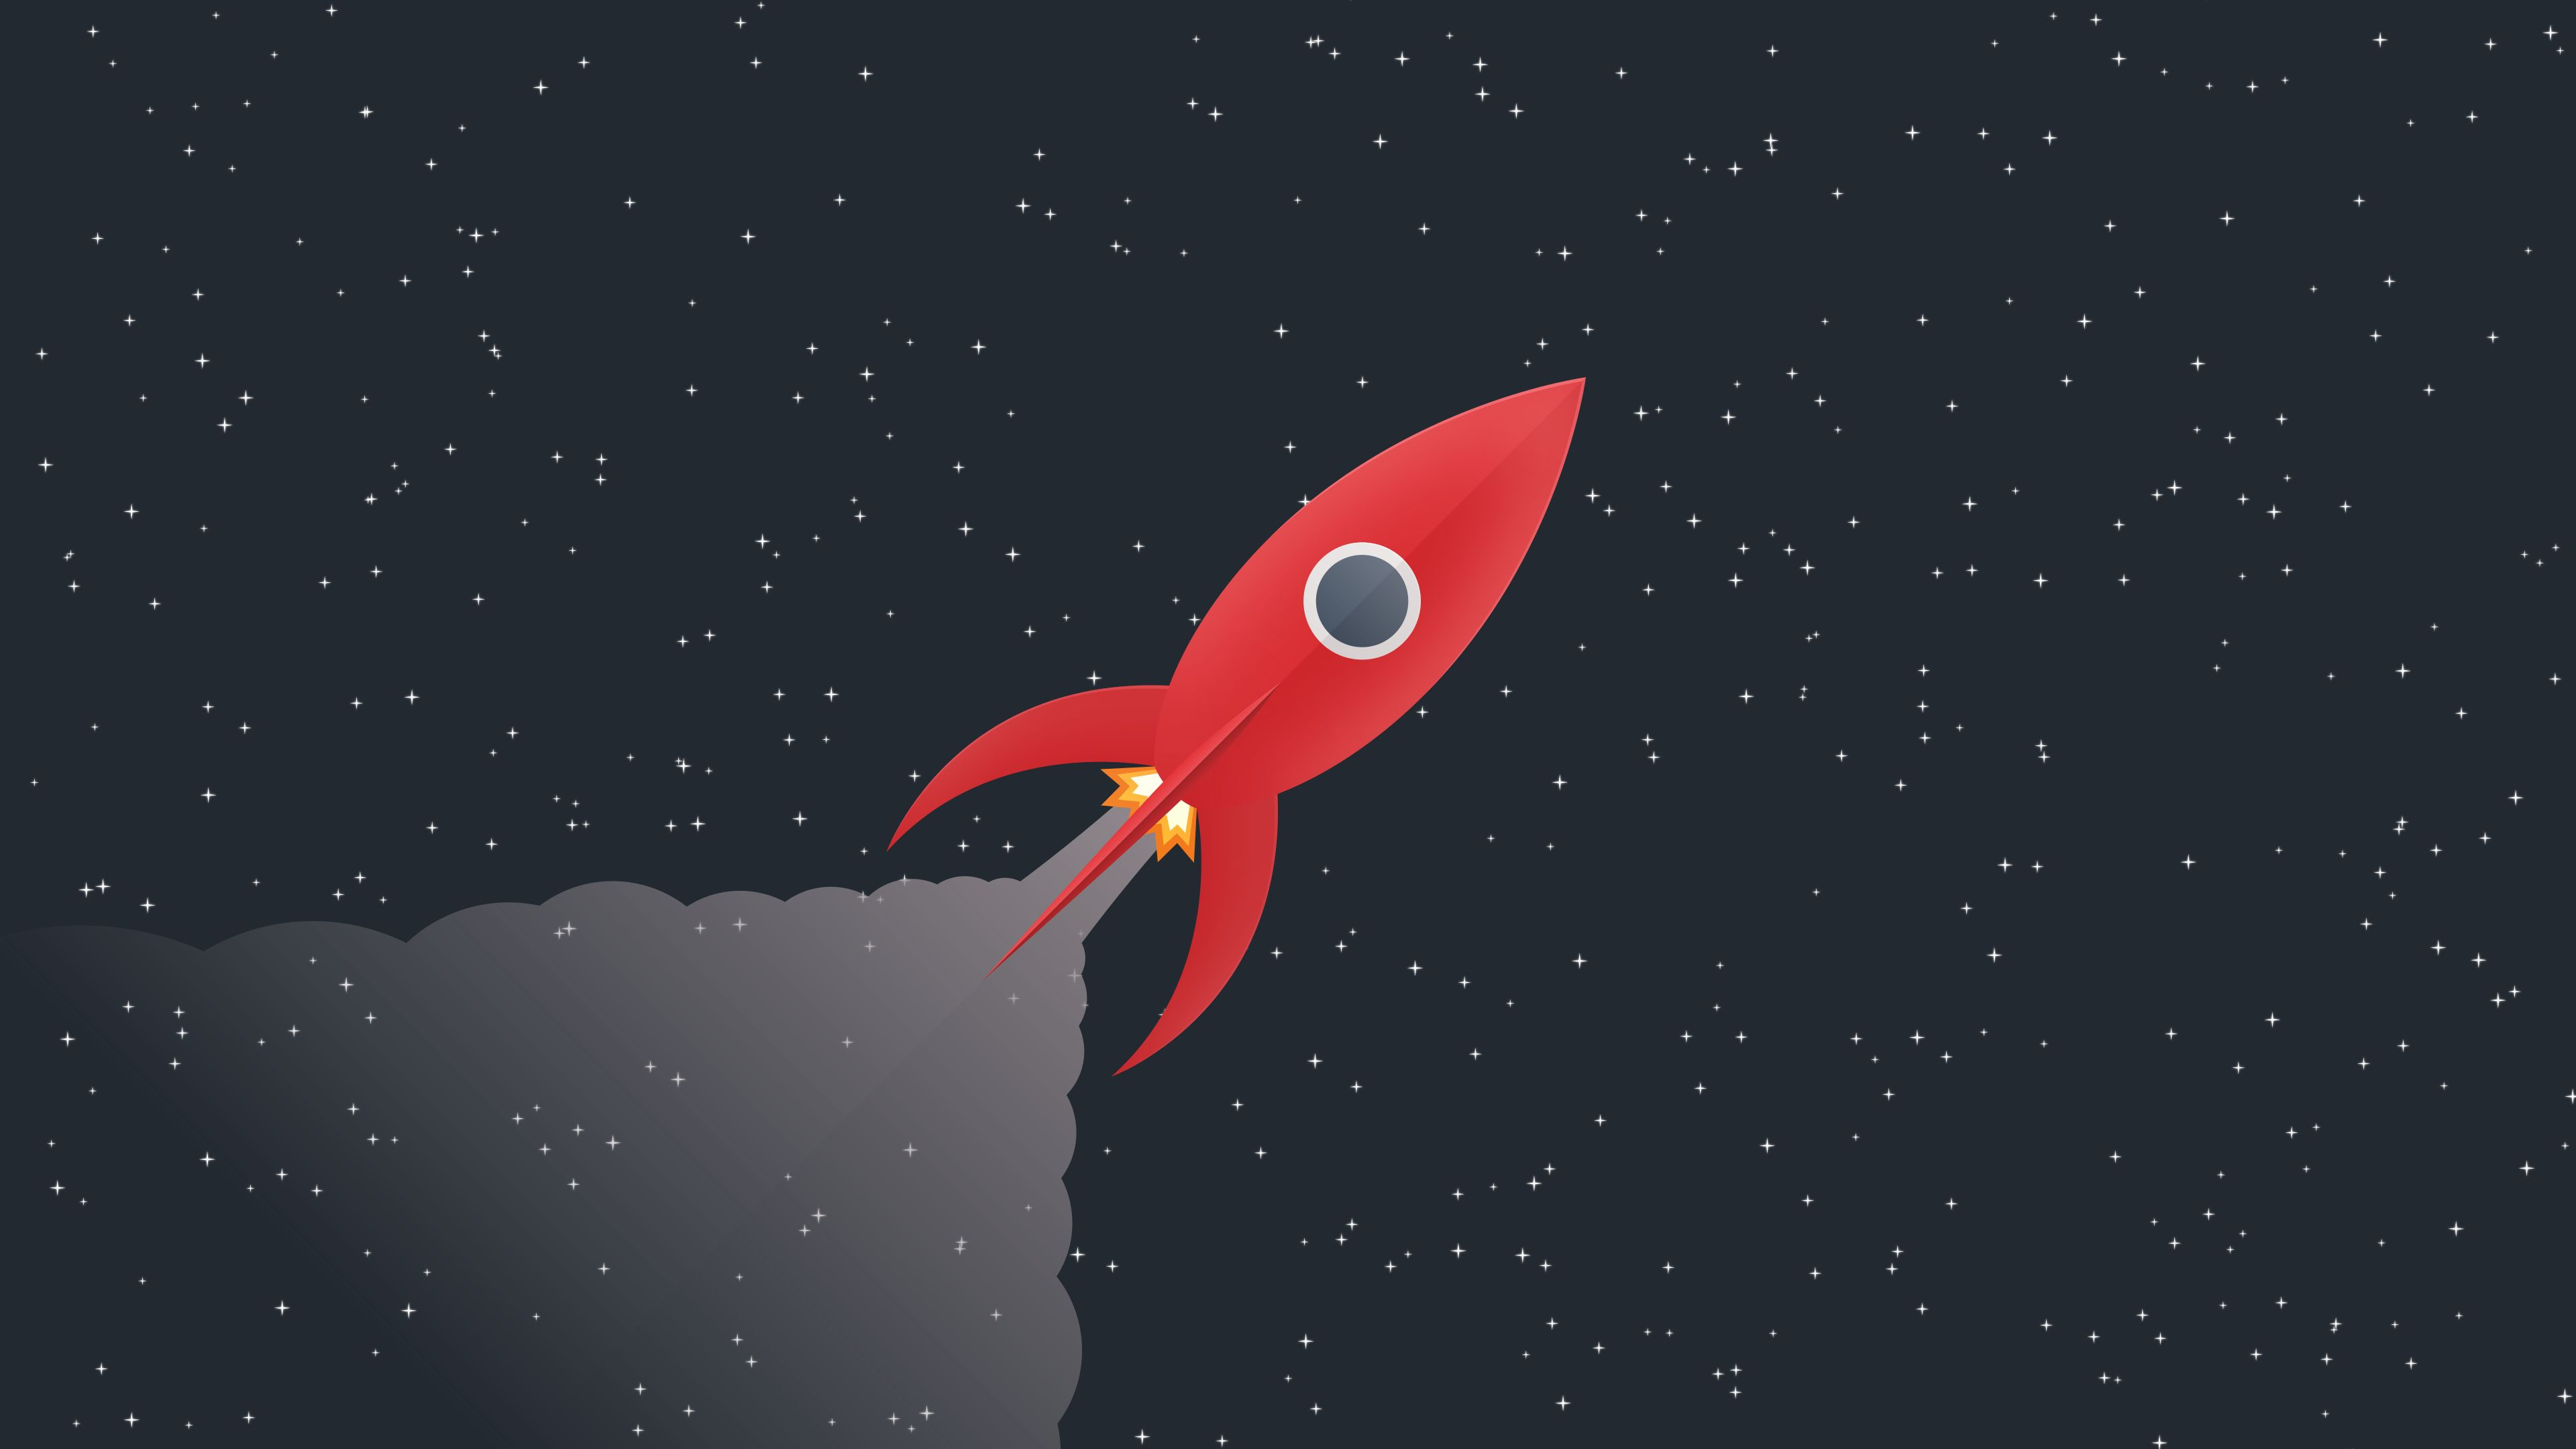 rocket animated wallpaper